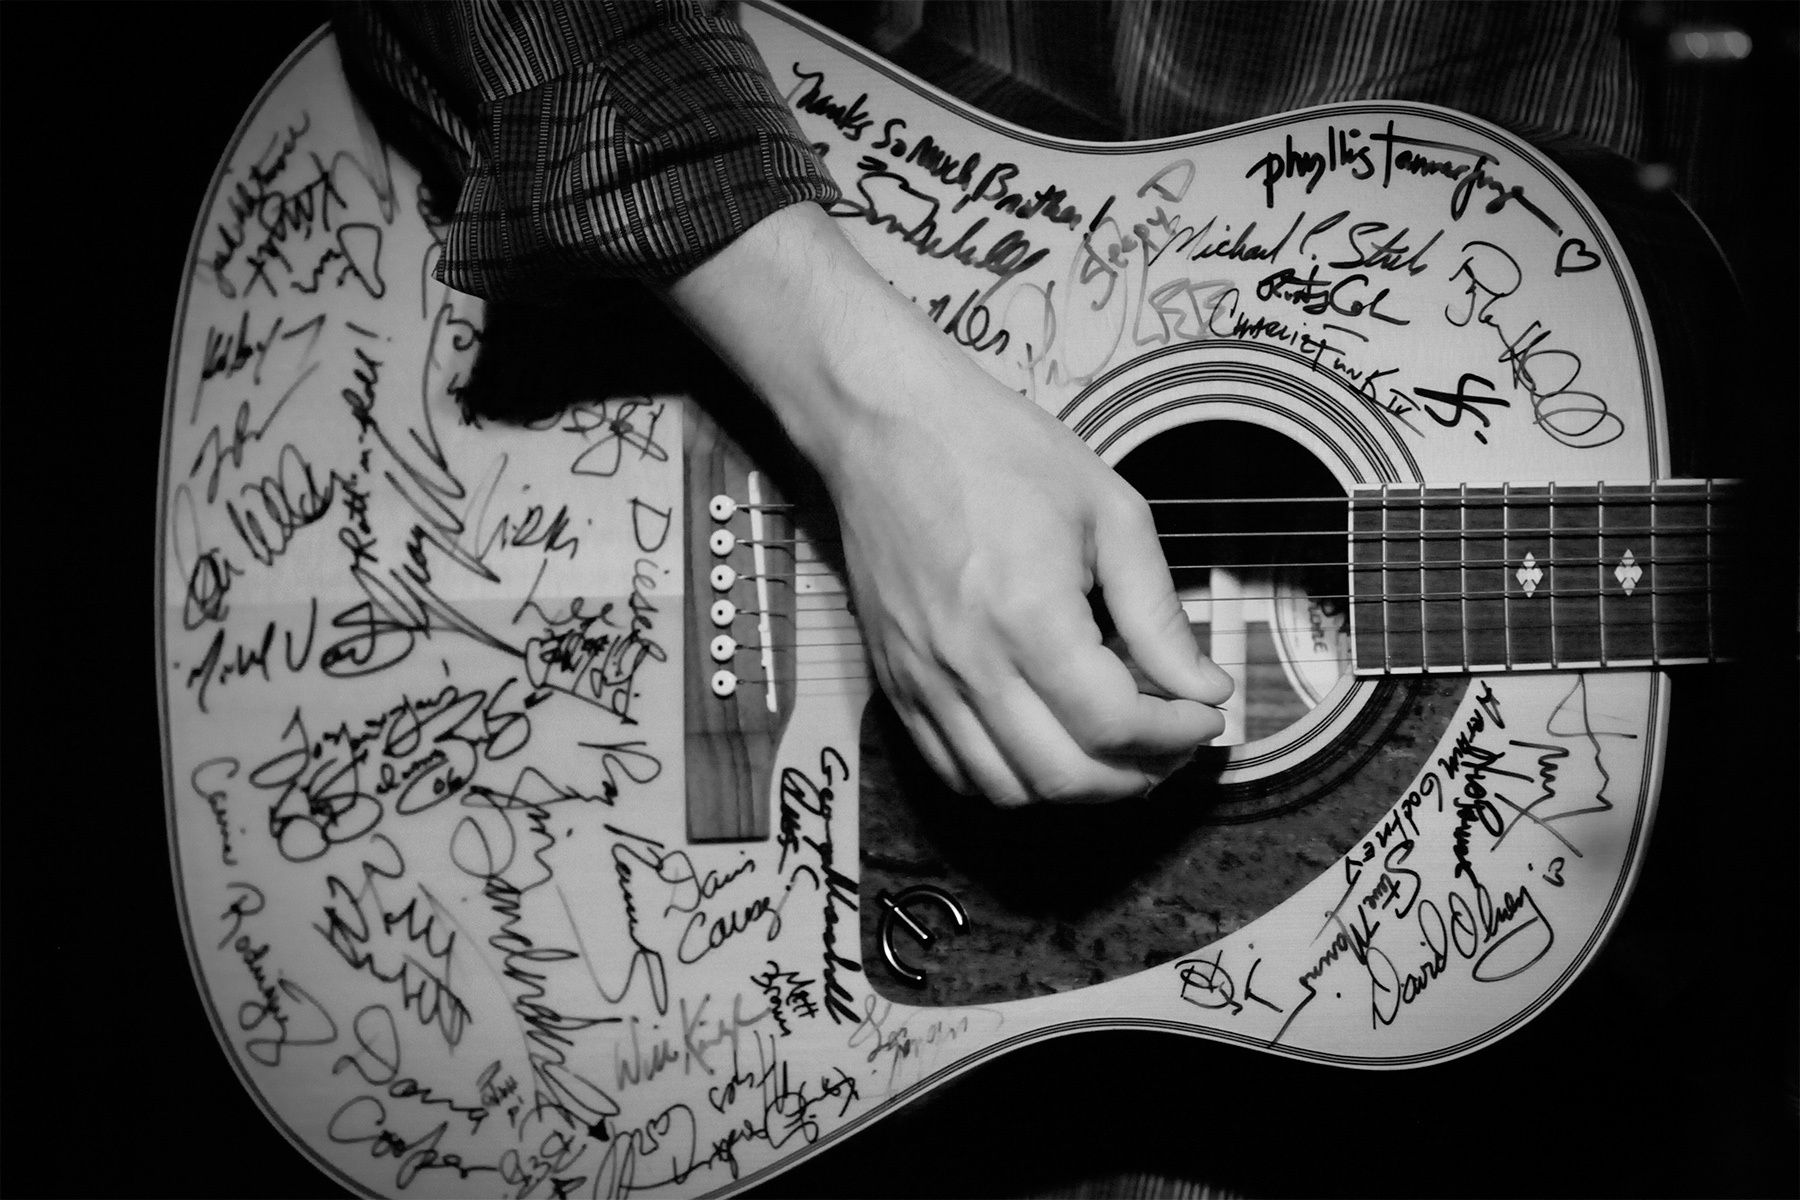 Lousiana songwriter Kevin Gordon performs with the {quote}SXSE Guitar{quote} at the Fest on August 14, 2010. The guitar has been signed by many of the musicians that have performed at the series.